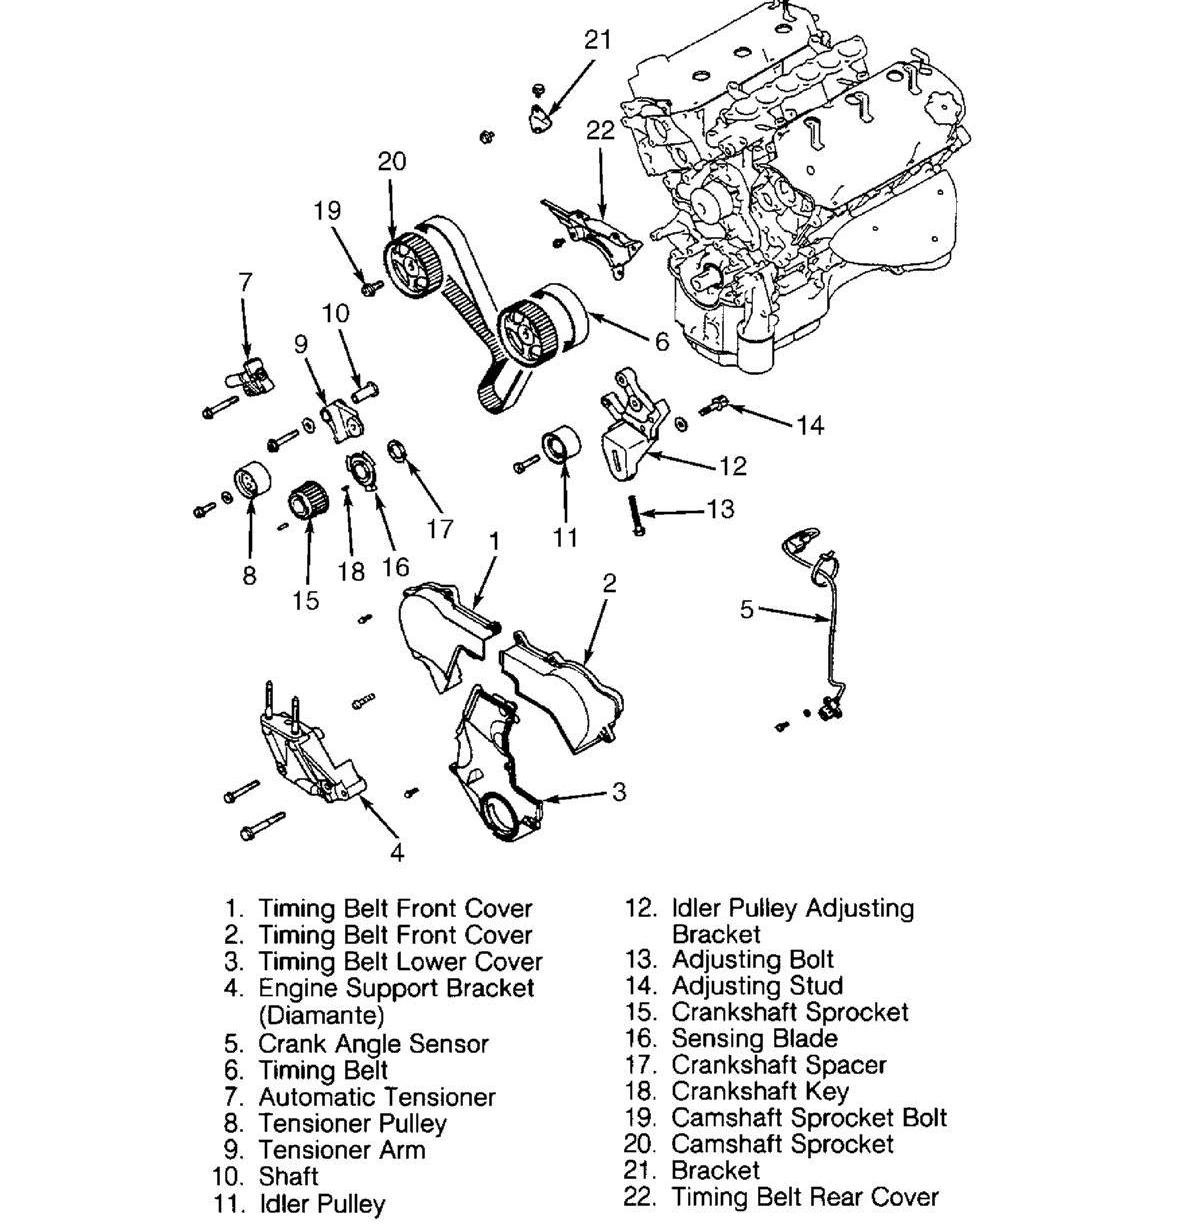 Saturn V Engine Diagram together with Mitsubishi Eclipse Crank Sensor together with Camshaft Position Sensor Location 2003 Eclipse as well P 0996b43f8037e77c as well Dodge Neon Wiring Diagram For Lighting. on 2004 mitsubishi eclipse heater core diagram